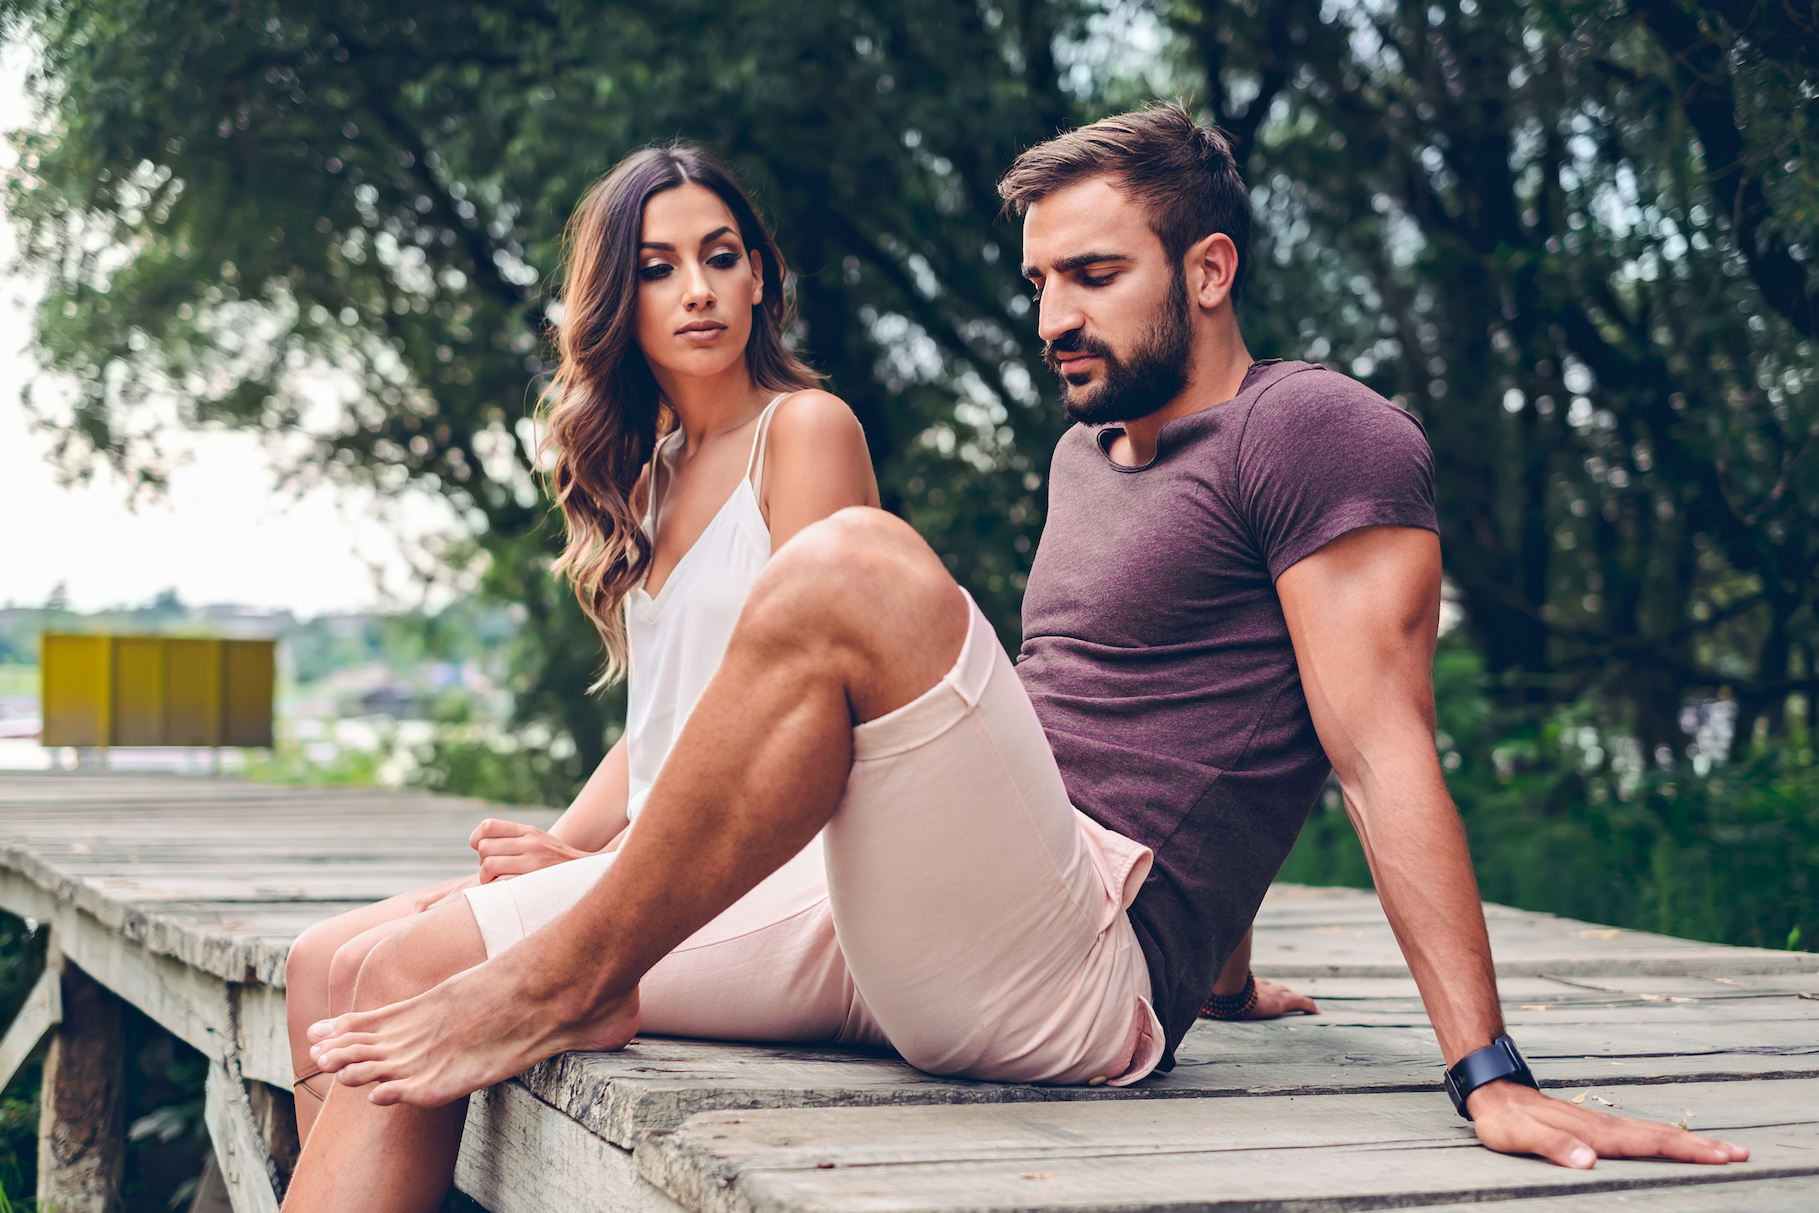 According to one expert, many modern relationships fail because we're asking too much of our partners and want them to be all things to us.